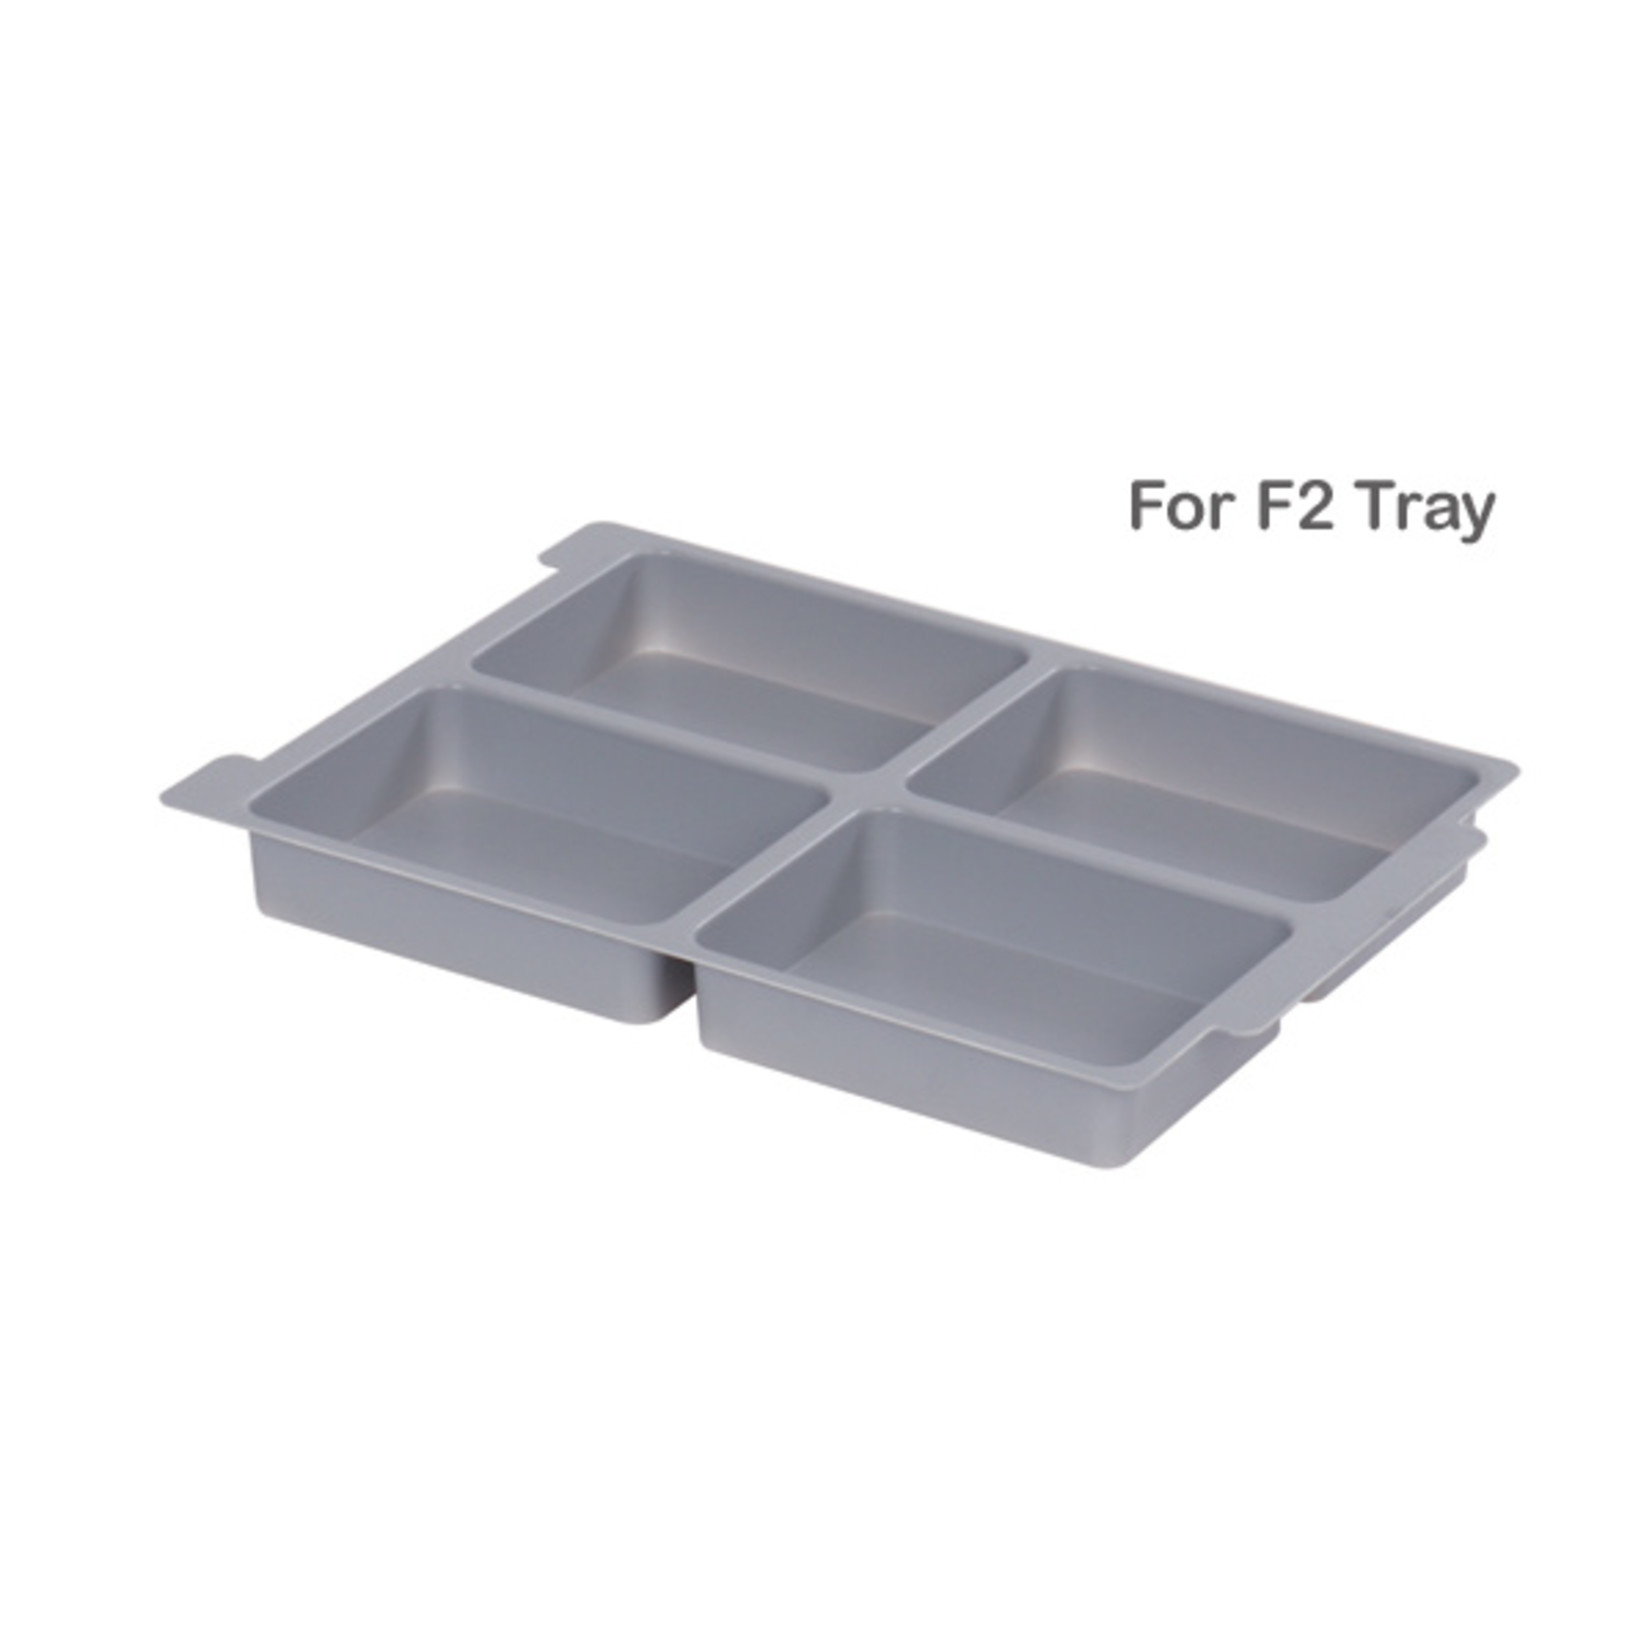 Gratnells Moulded Insert 4 Section for F2 in Dove Grey